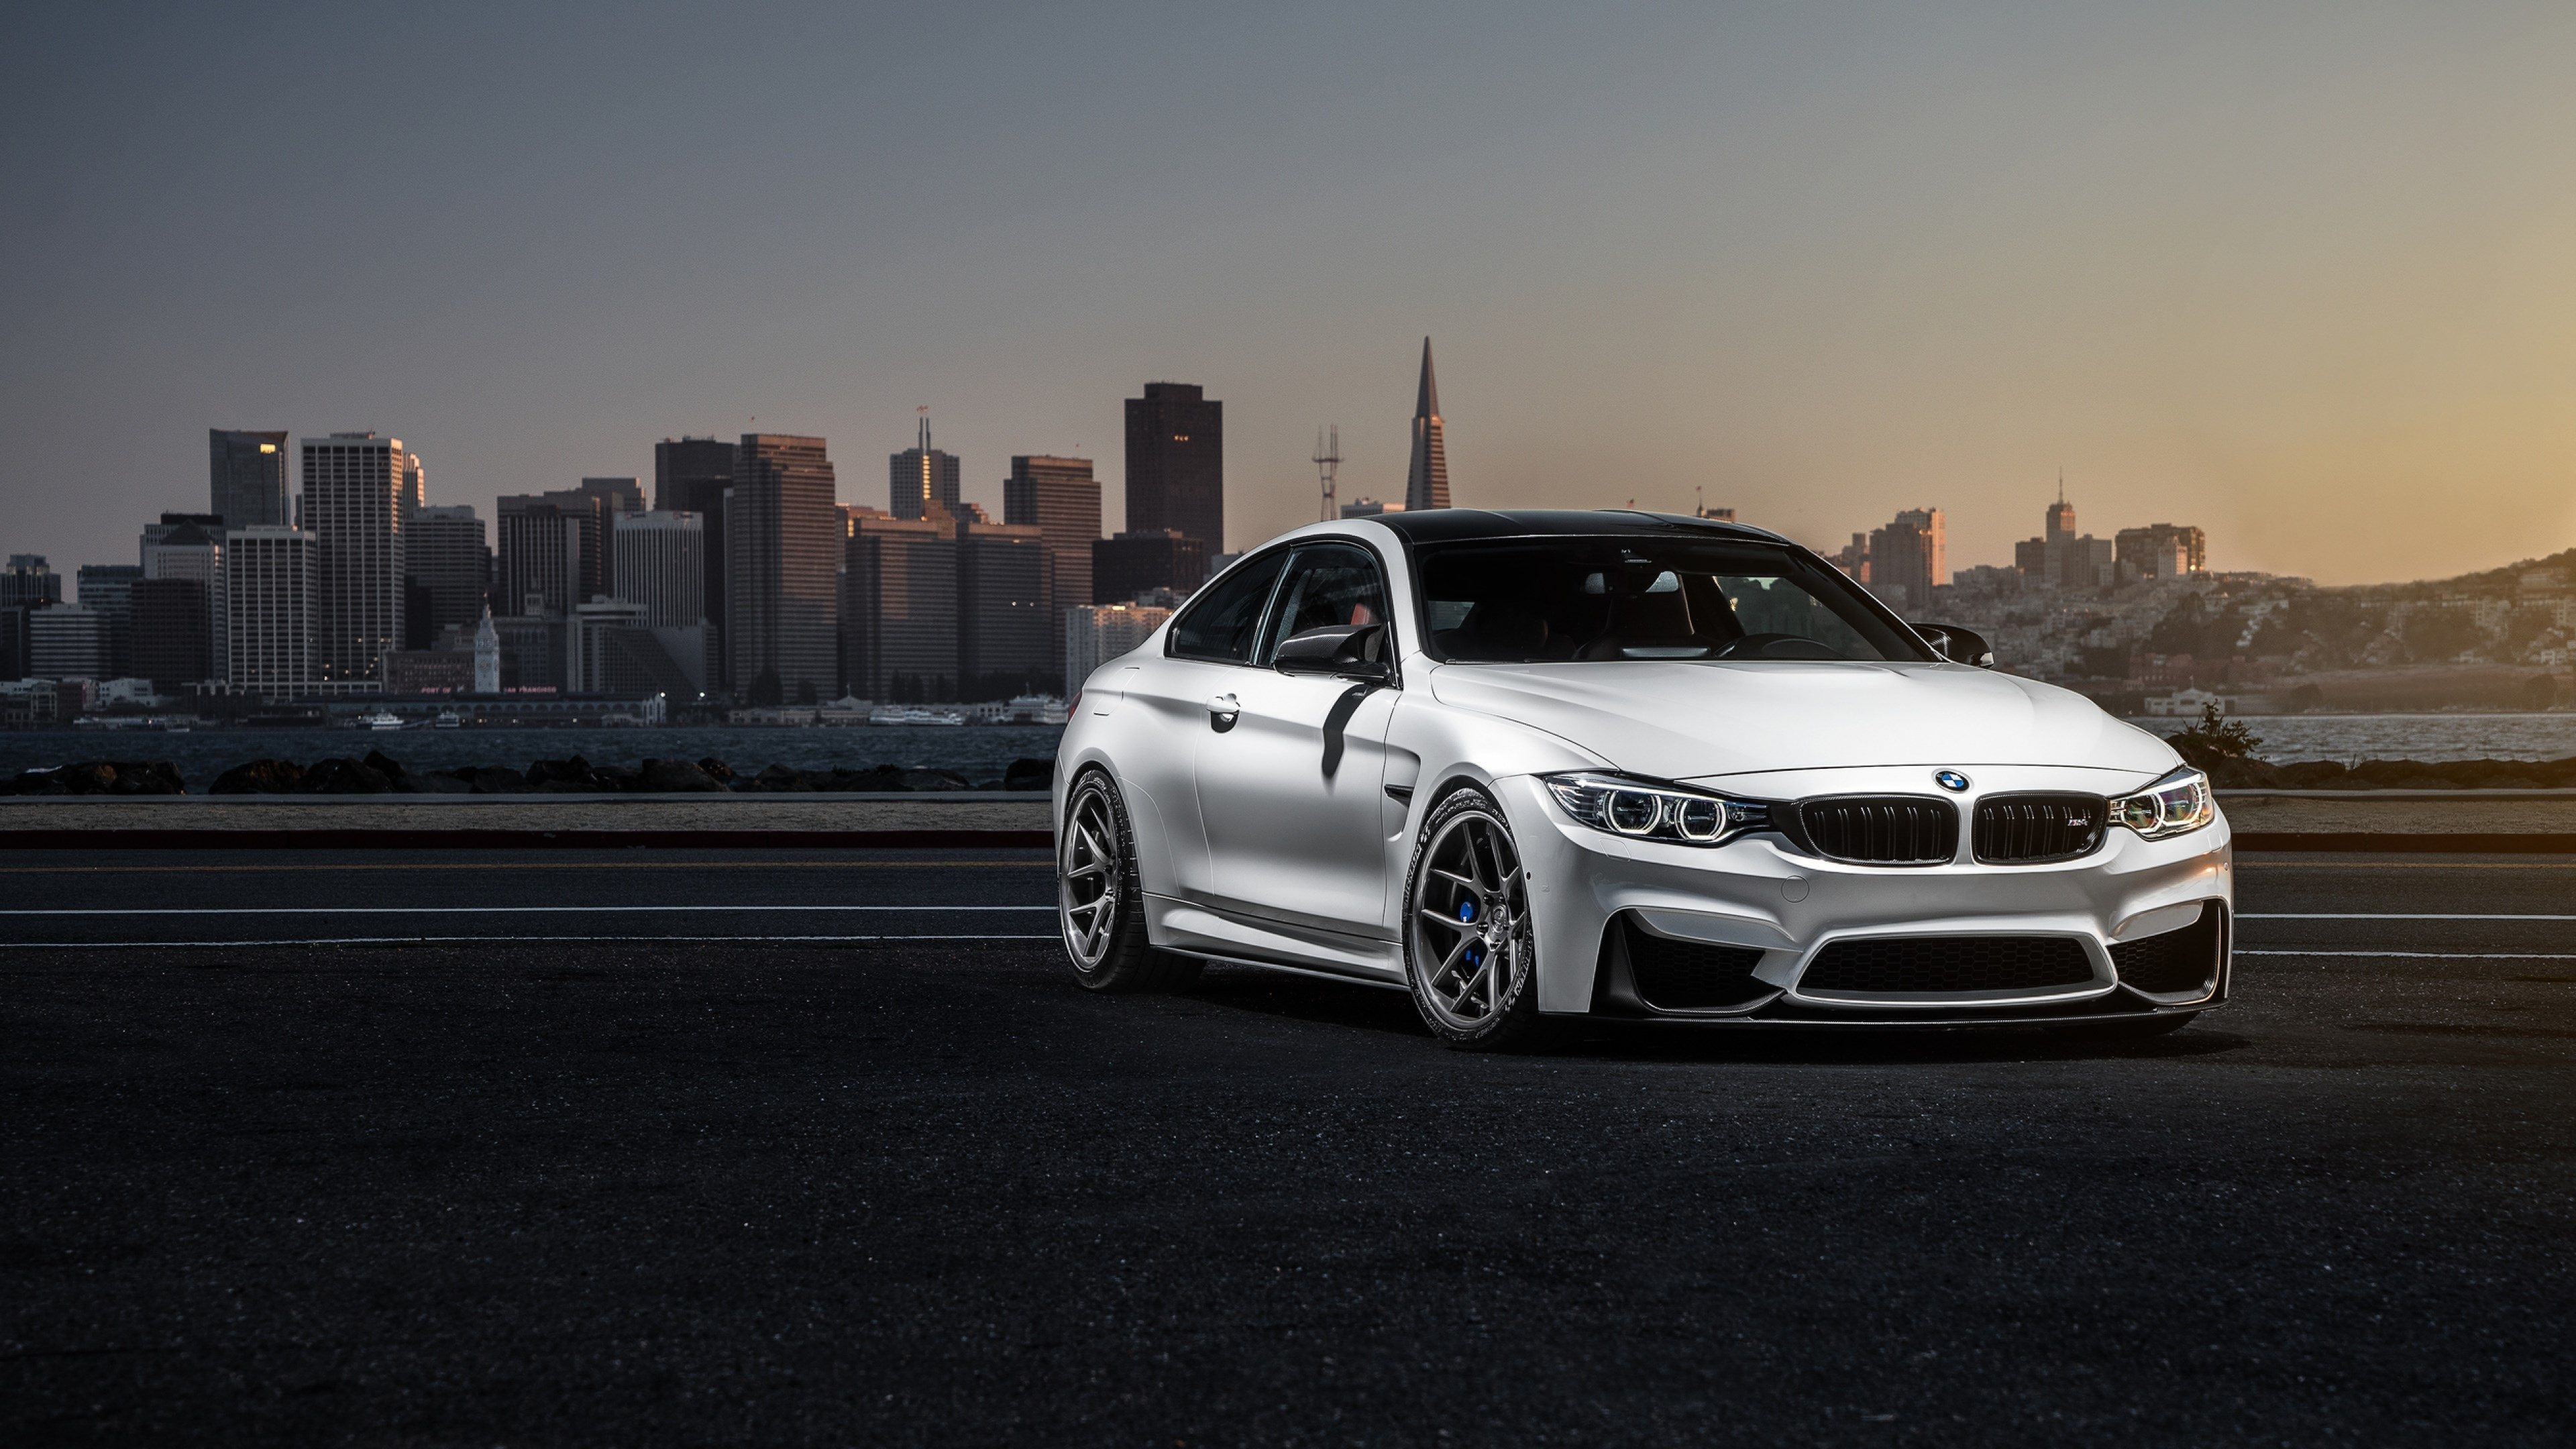 3840x2160 Bmw 4k High Resolution Wallpaper For Desktop Free Download Bmw Wallpapers Bmw M4 Coupe Bmw